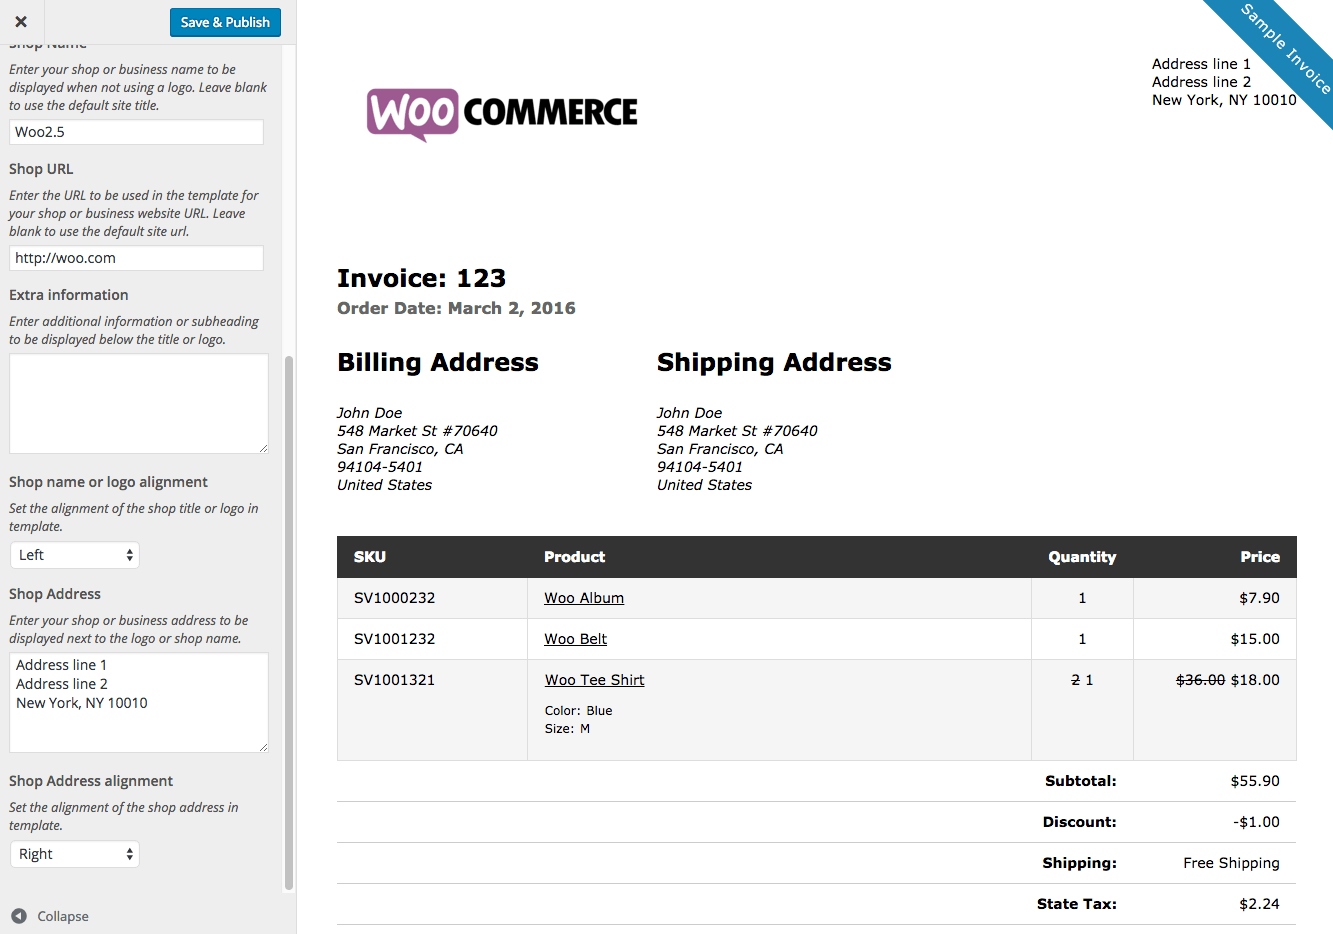 Totallocalus  Fascinating Woocommerce Print Invoices Amp Packing Lists  Woocommerce Docs With Exciting Woocommerce Print Invoices  Packing Lists Customizer With Attractive Recruitment Invoice Also Pro Forma Invoice Sample In Addition Australian Tax Invoice And Car Service Invoice Template As Well As Software For Invoice Additionally Free Uk Invoice Template Word From Docswoocommercecom With Totallocalus  Exciting Woocommerce Print Invoices Amp Packing Lists  Woocommerce Docs With Attractive Woocommerce Print Invoices  Packing Lists Customizer And Fascinating Recruitment Invoice Also Pro Forma Invoice Sample In Addition Australian Tax Invoice From Docswoocommercecom